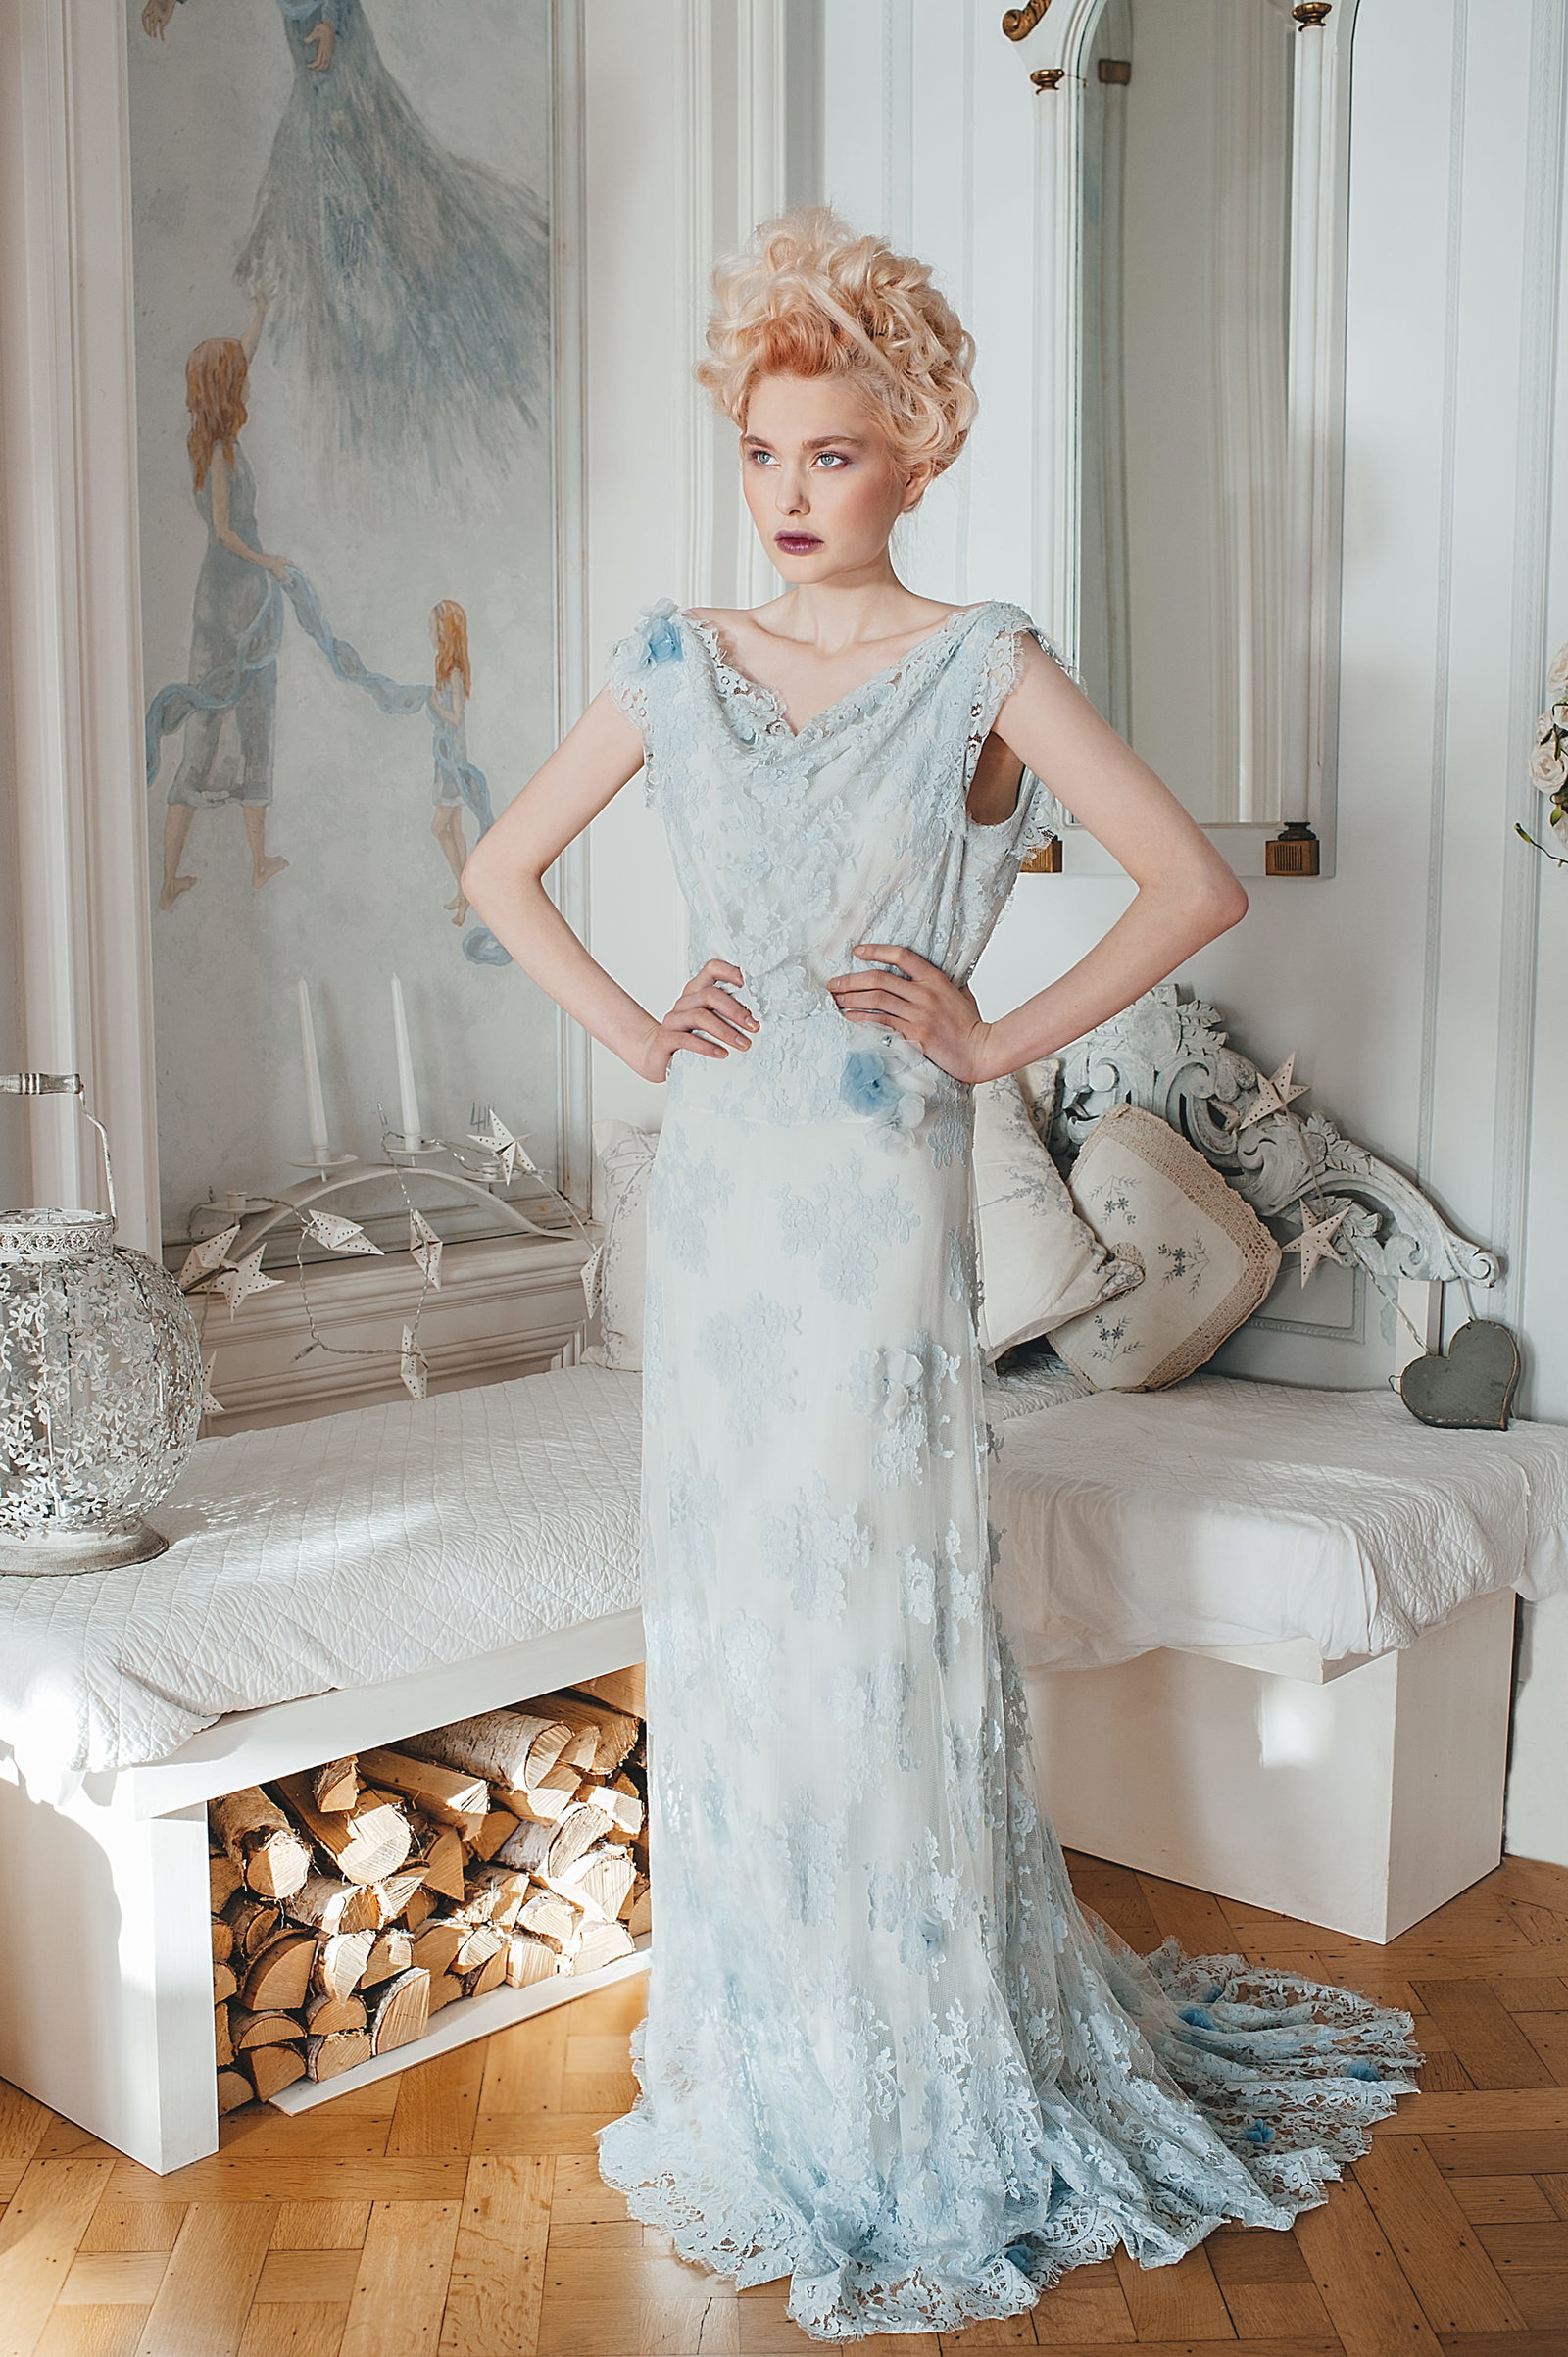 Harebell_pale_blue_lace_wedding_dress_JoanneFlemingDesign (2)